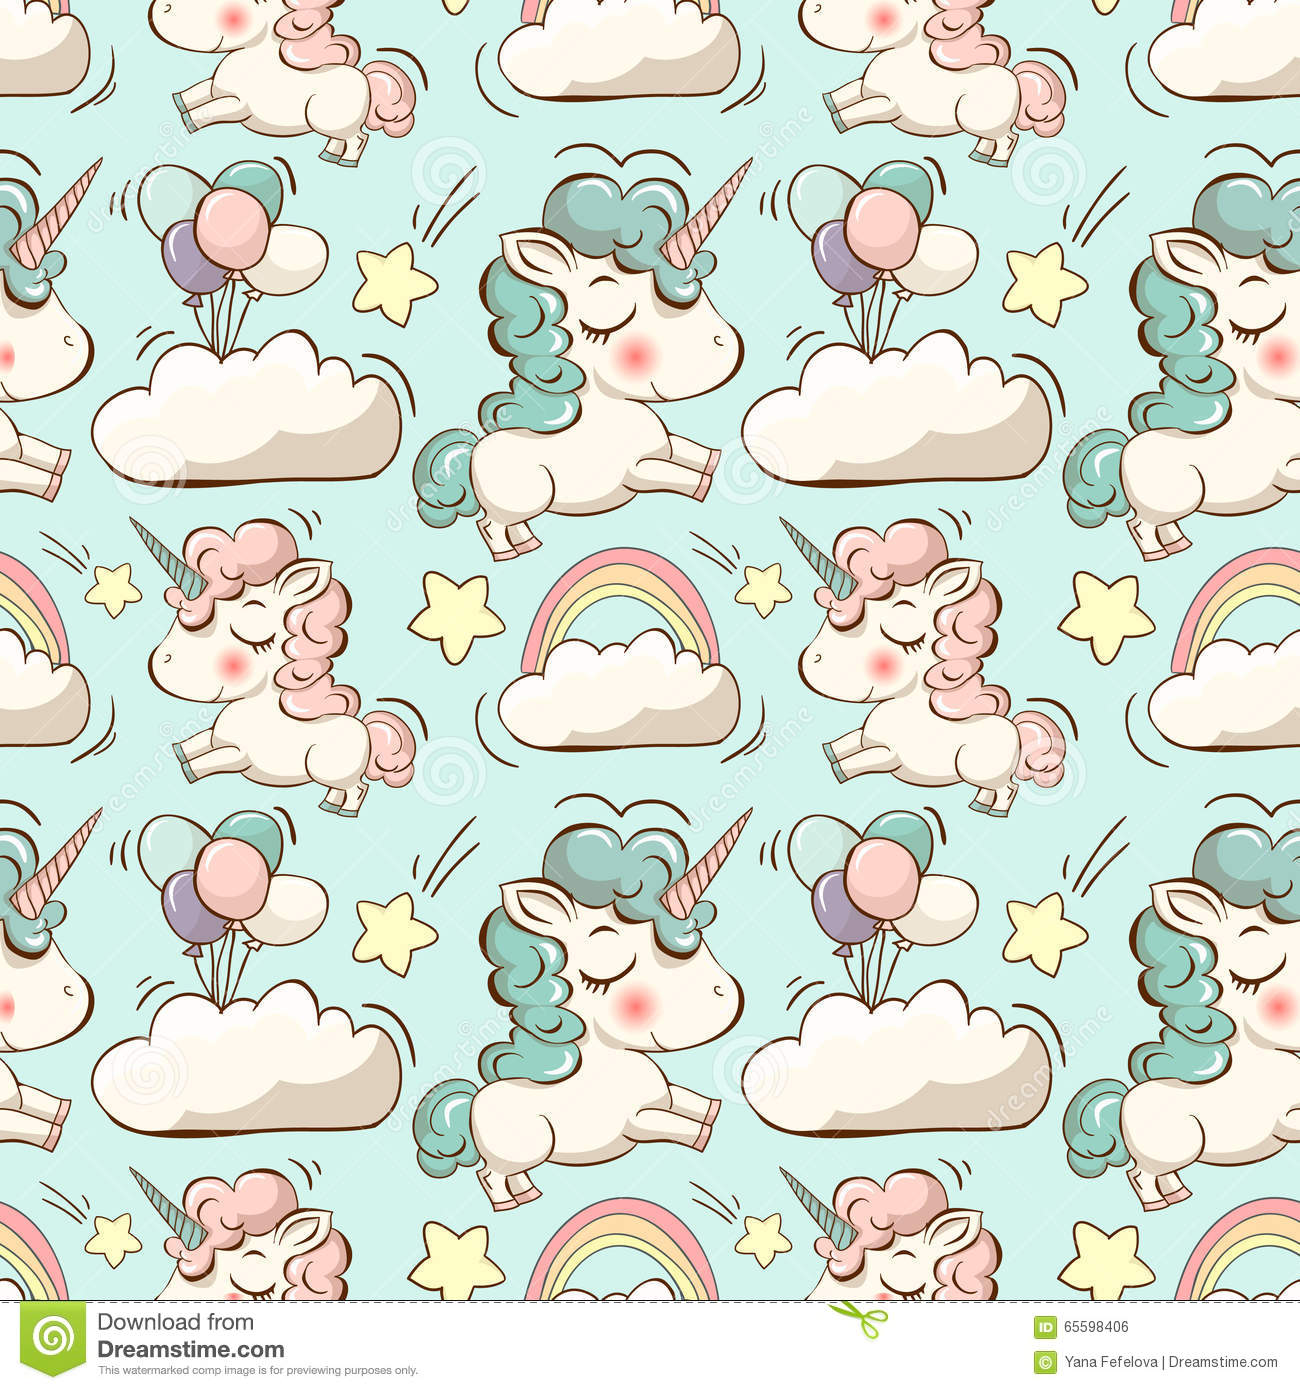 Unicorn Pattern Unique Inspiration